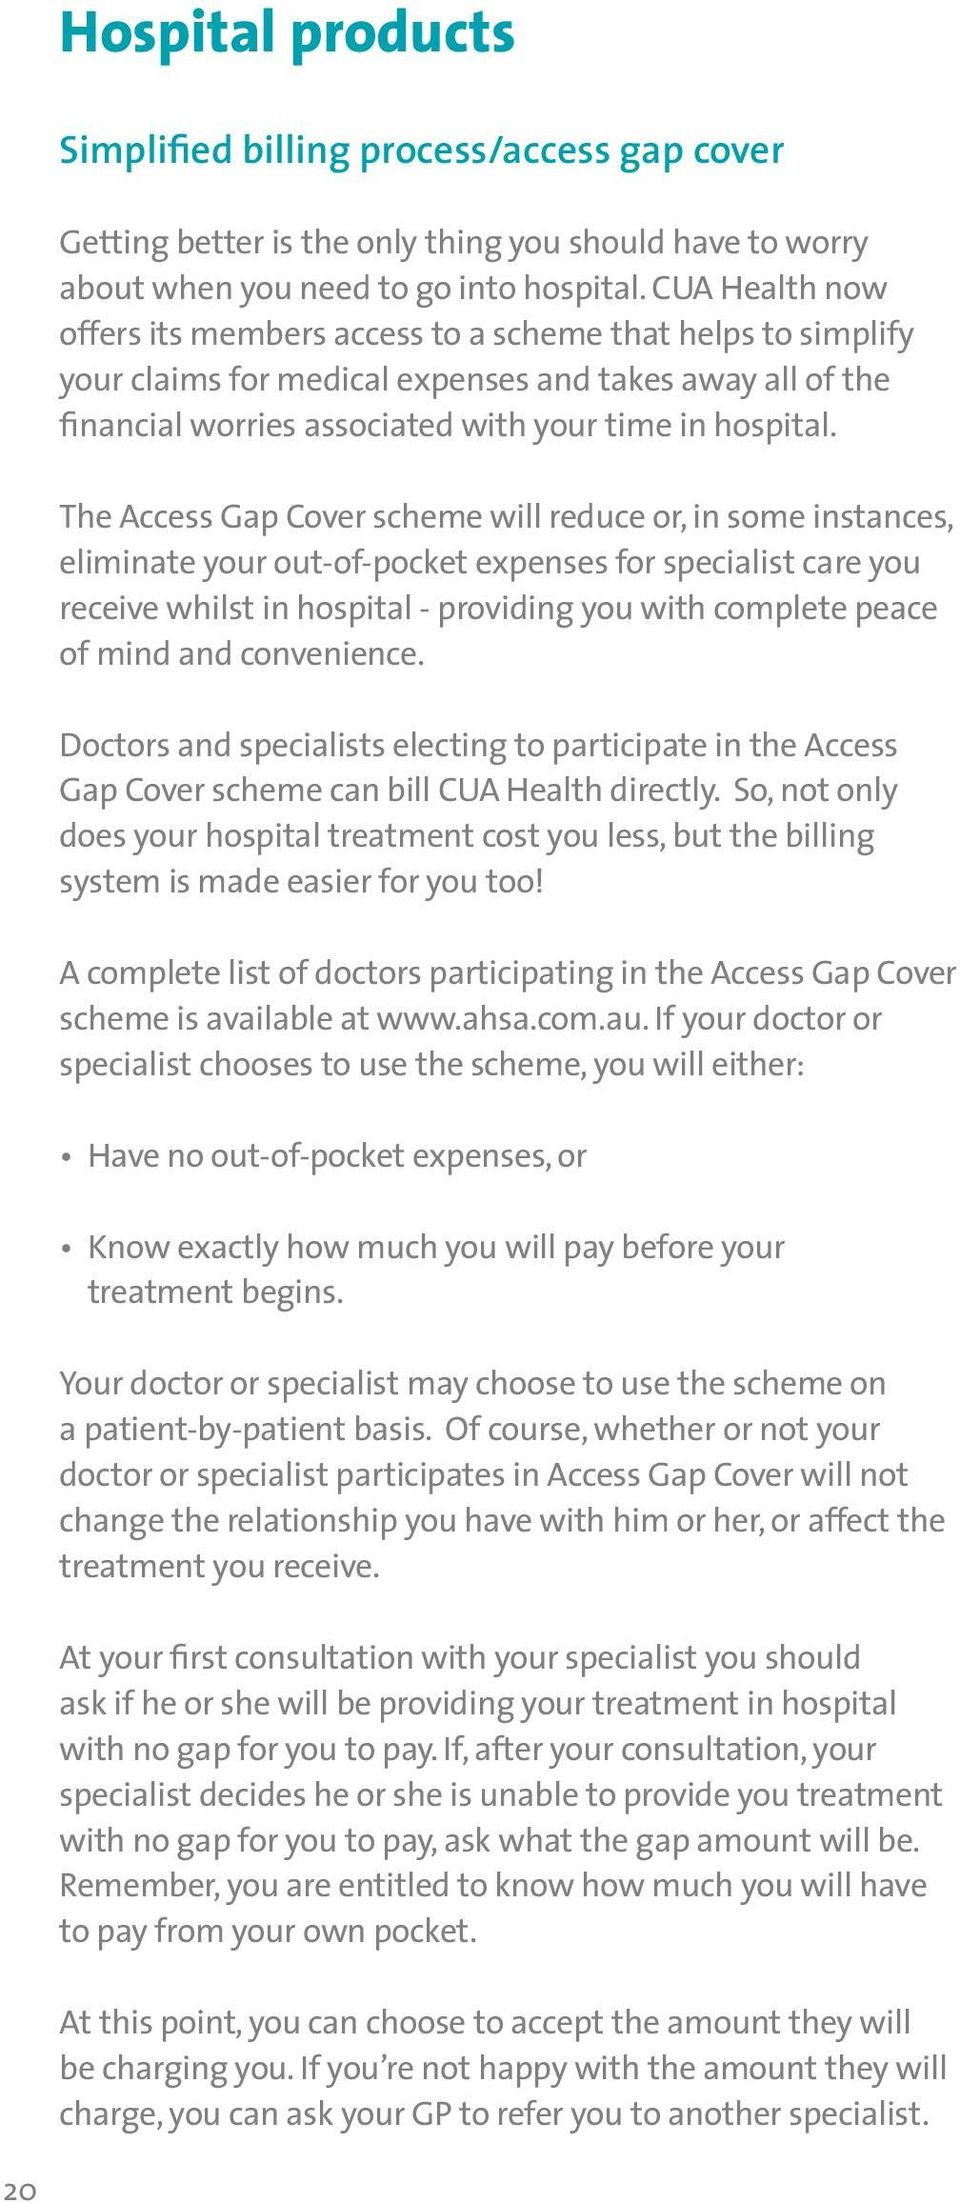 The Access Gap Cover scheme will reduce or, in some instances, eliminate your out-of-pocket expenses for specialist care you receive whilst in hospital - providing you with complete peace of mind and